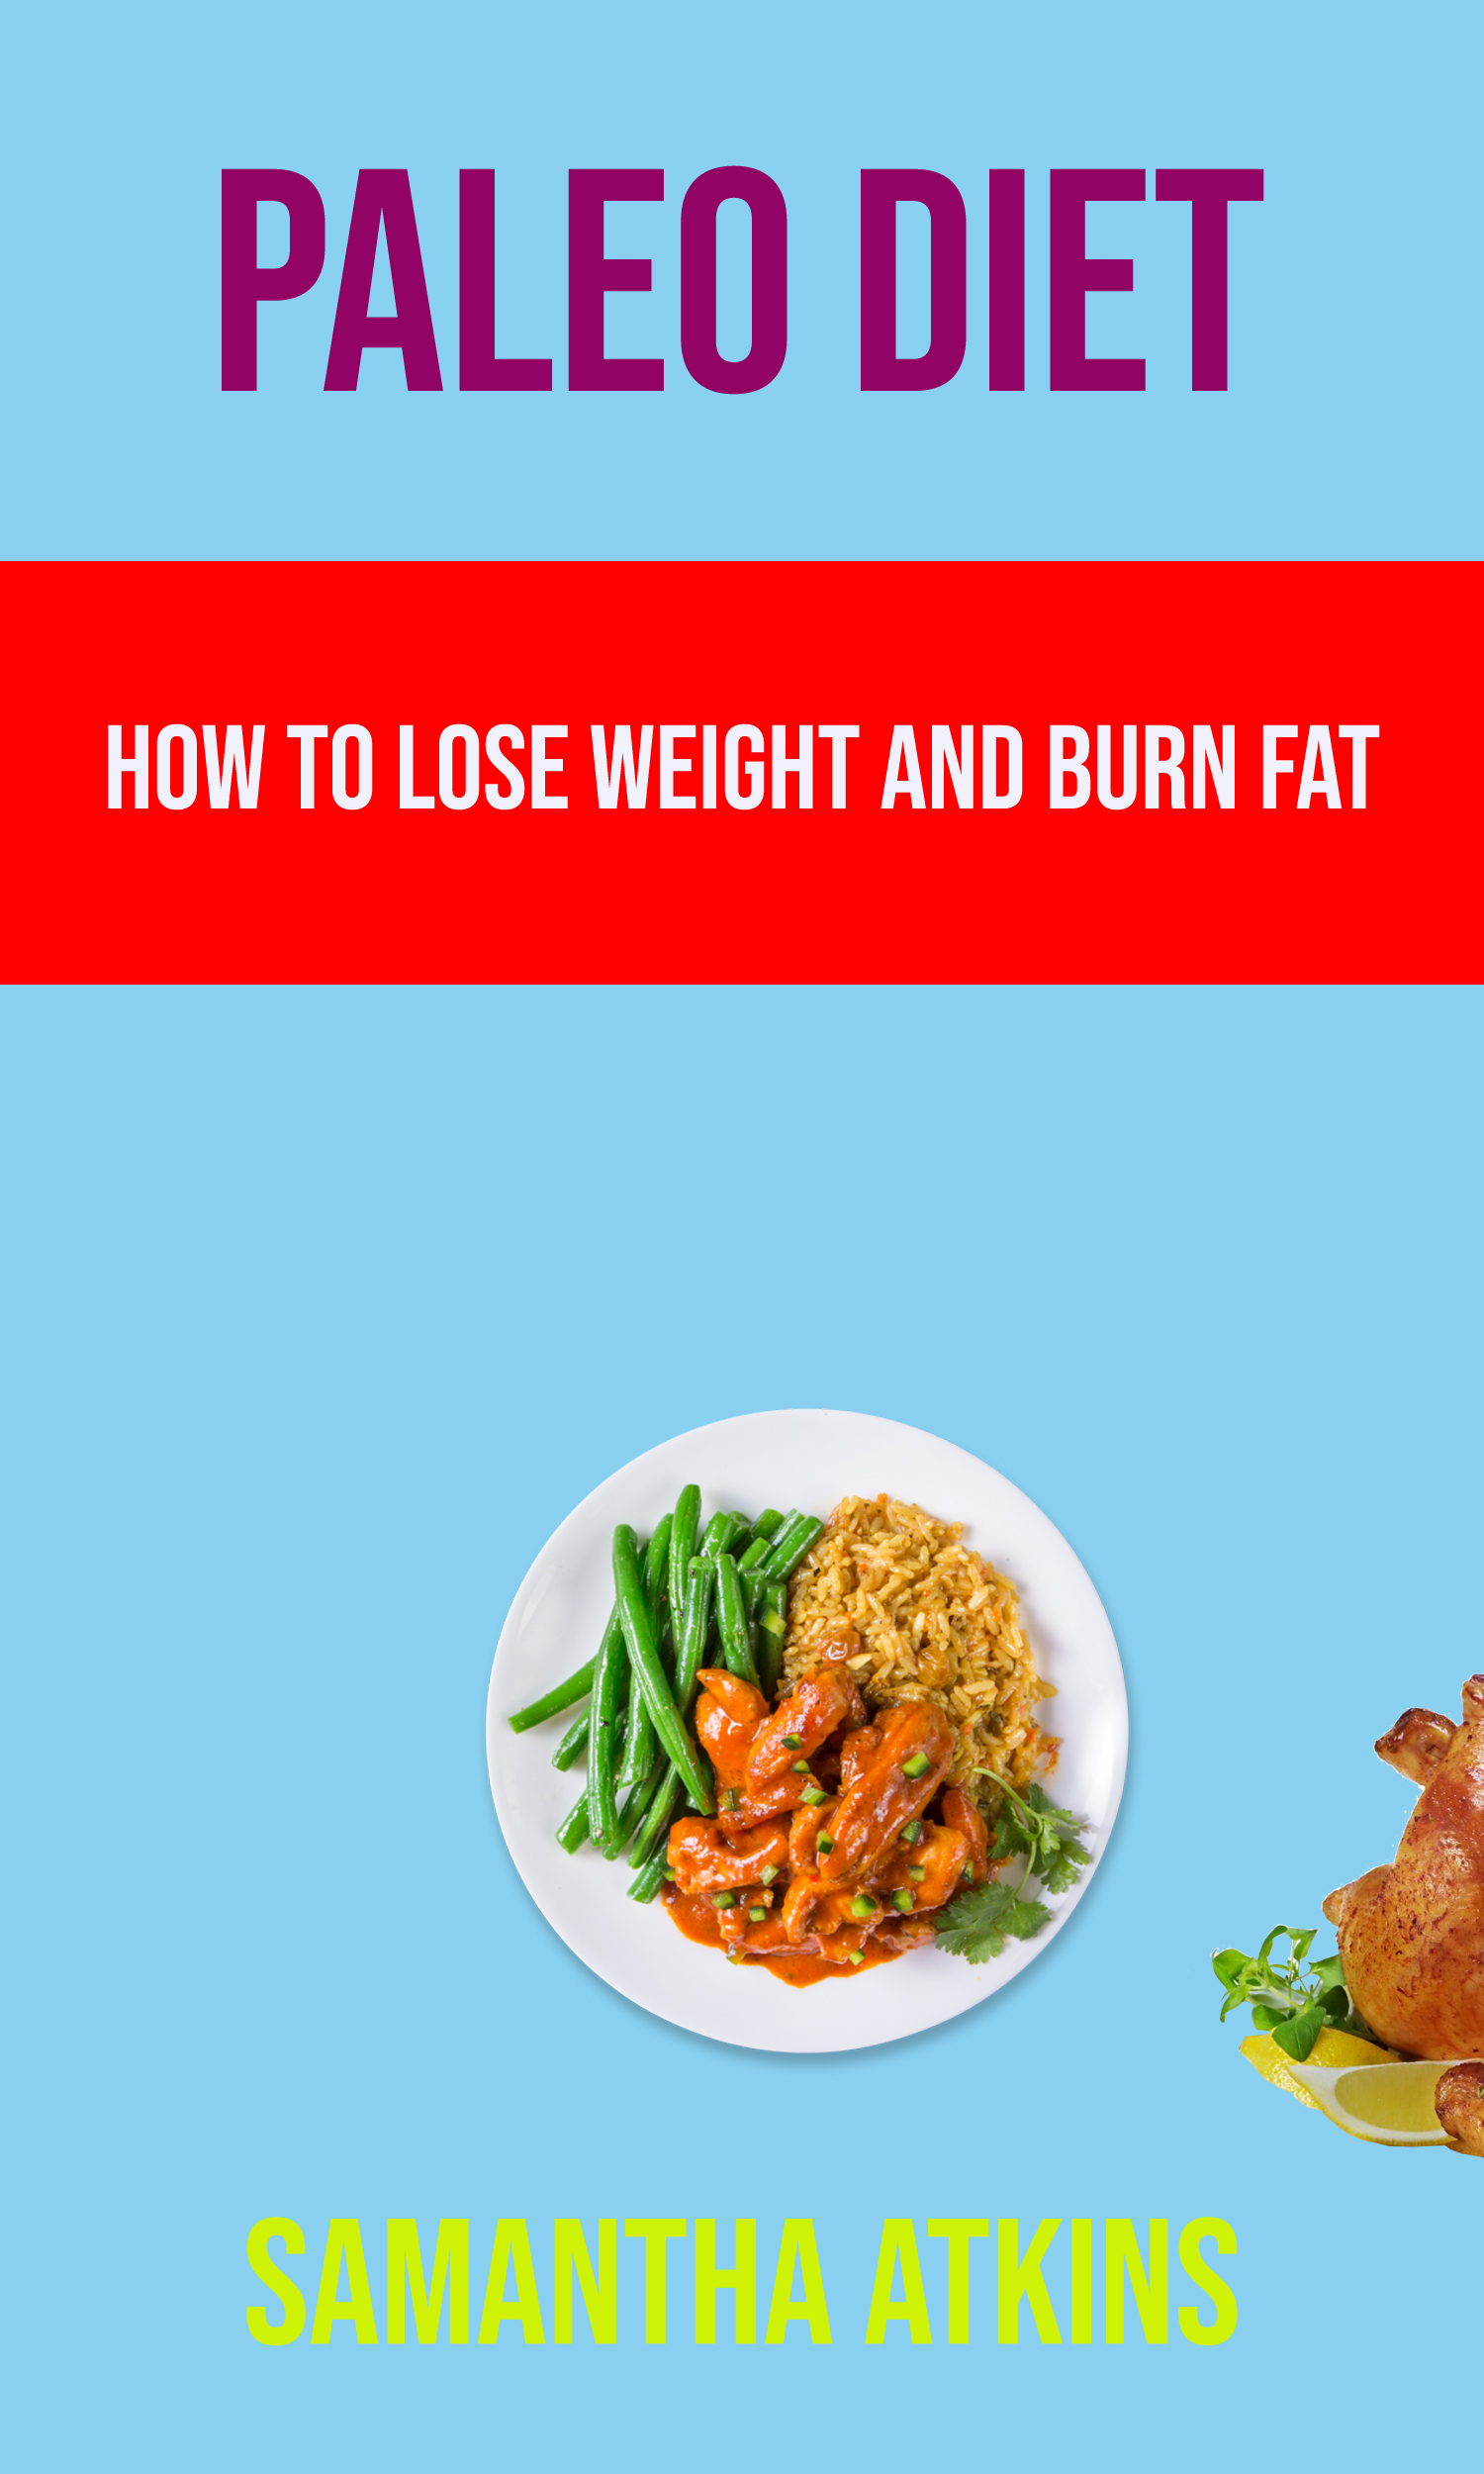 Paleo diet: how to lose weight and burn fat